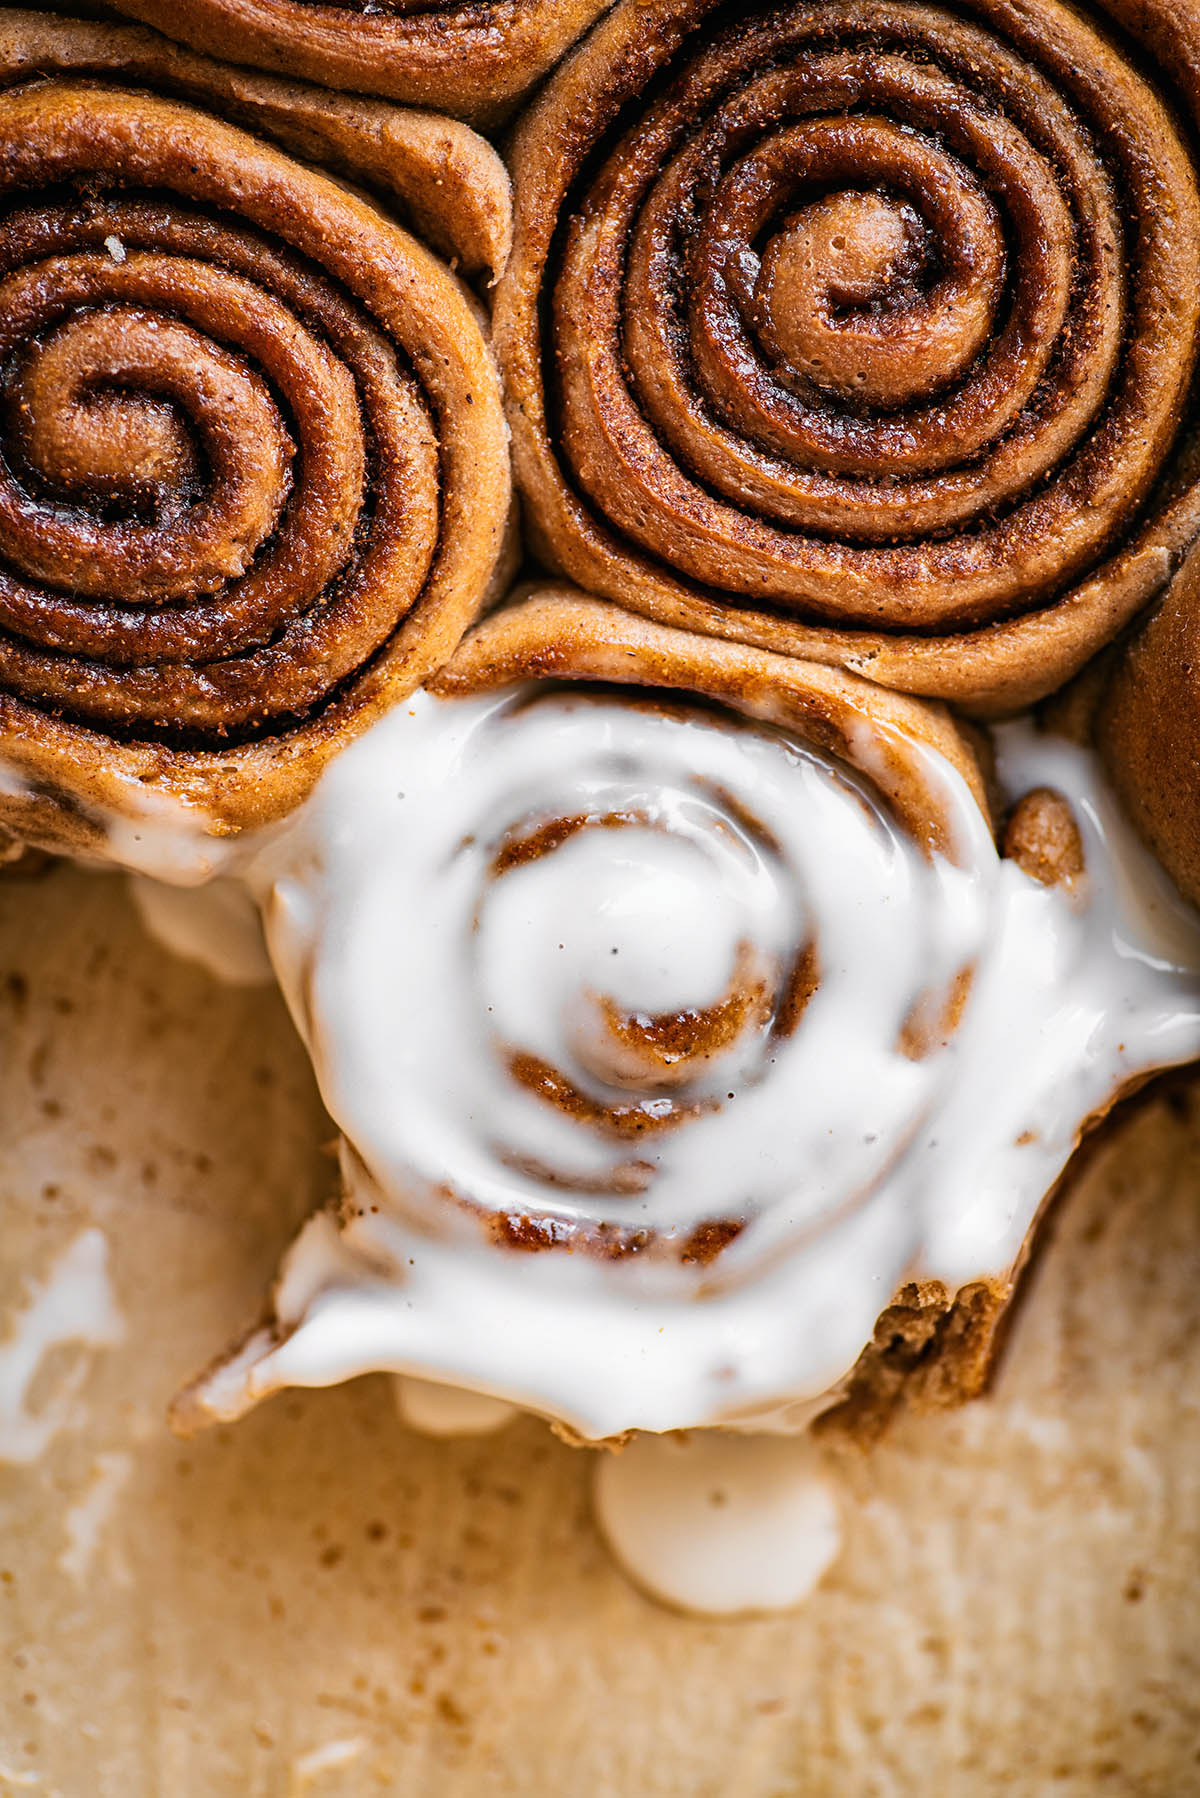 Cinnamon rolls, close up, one with icing.